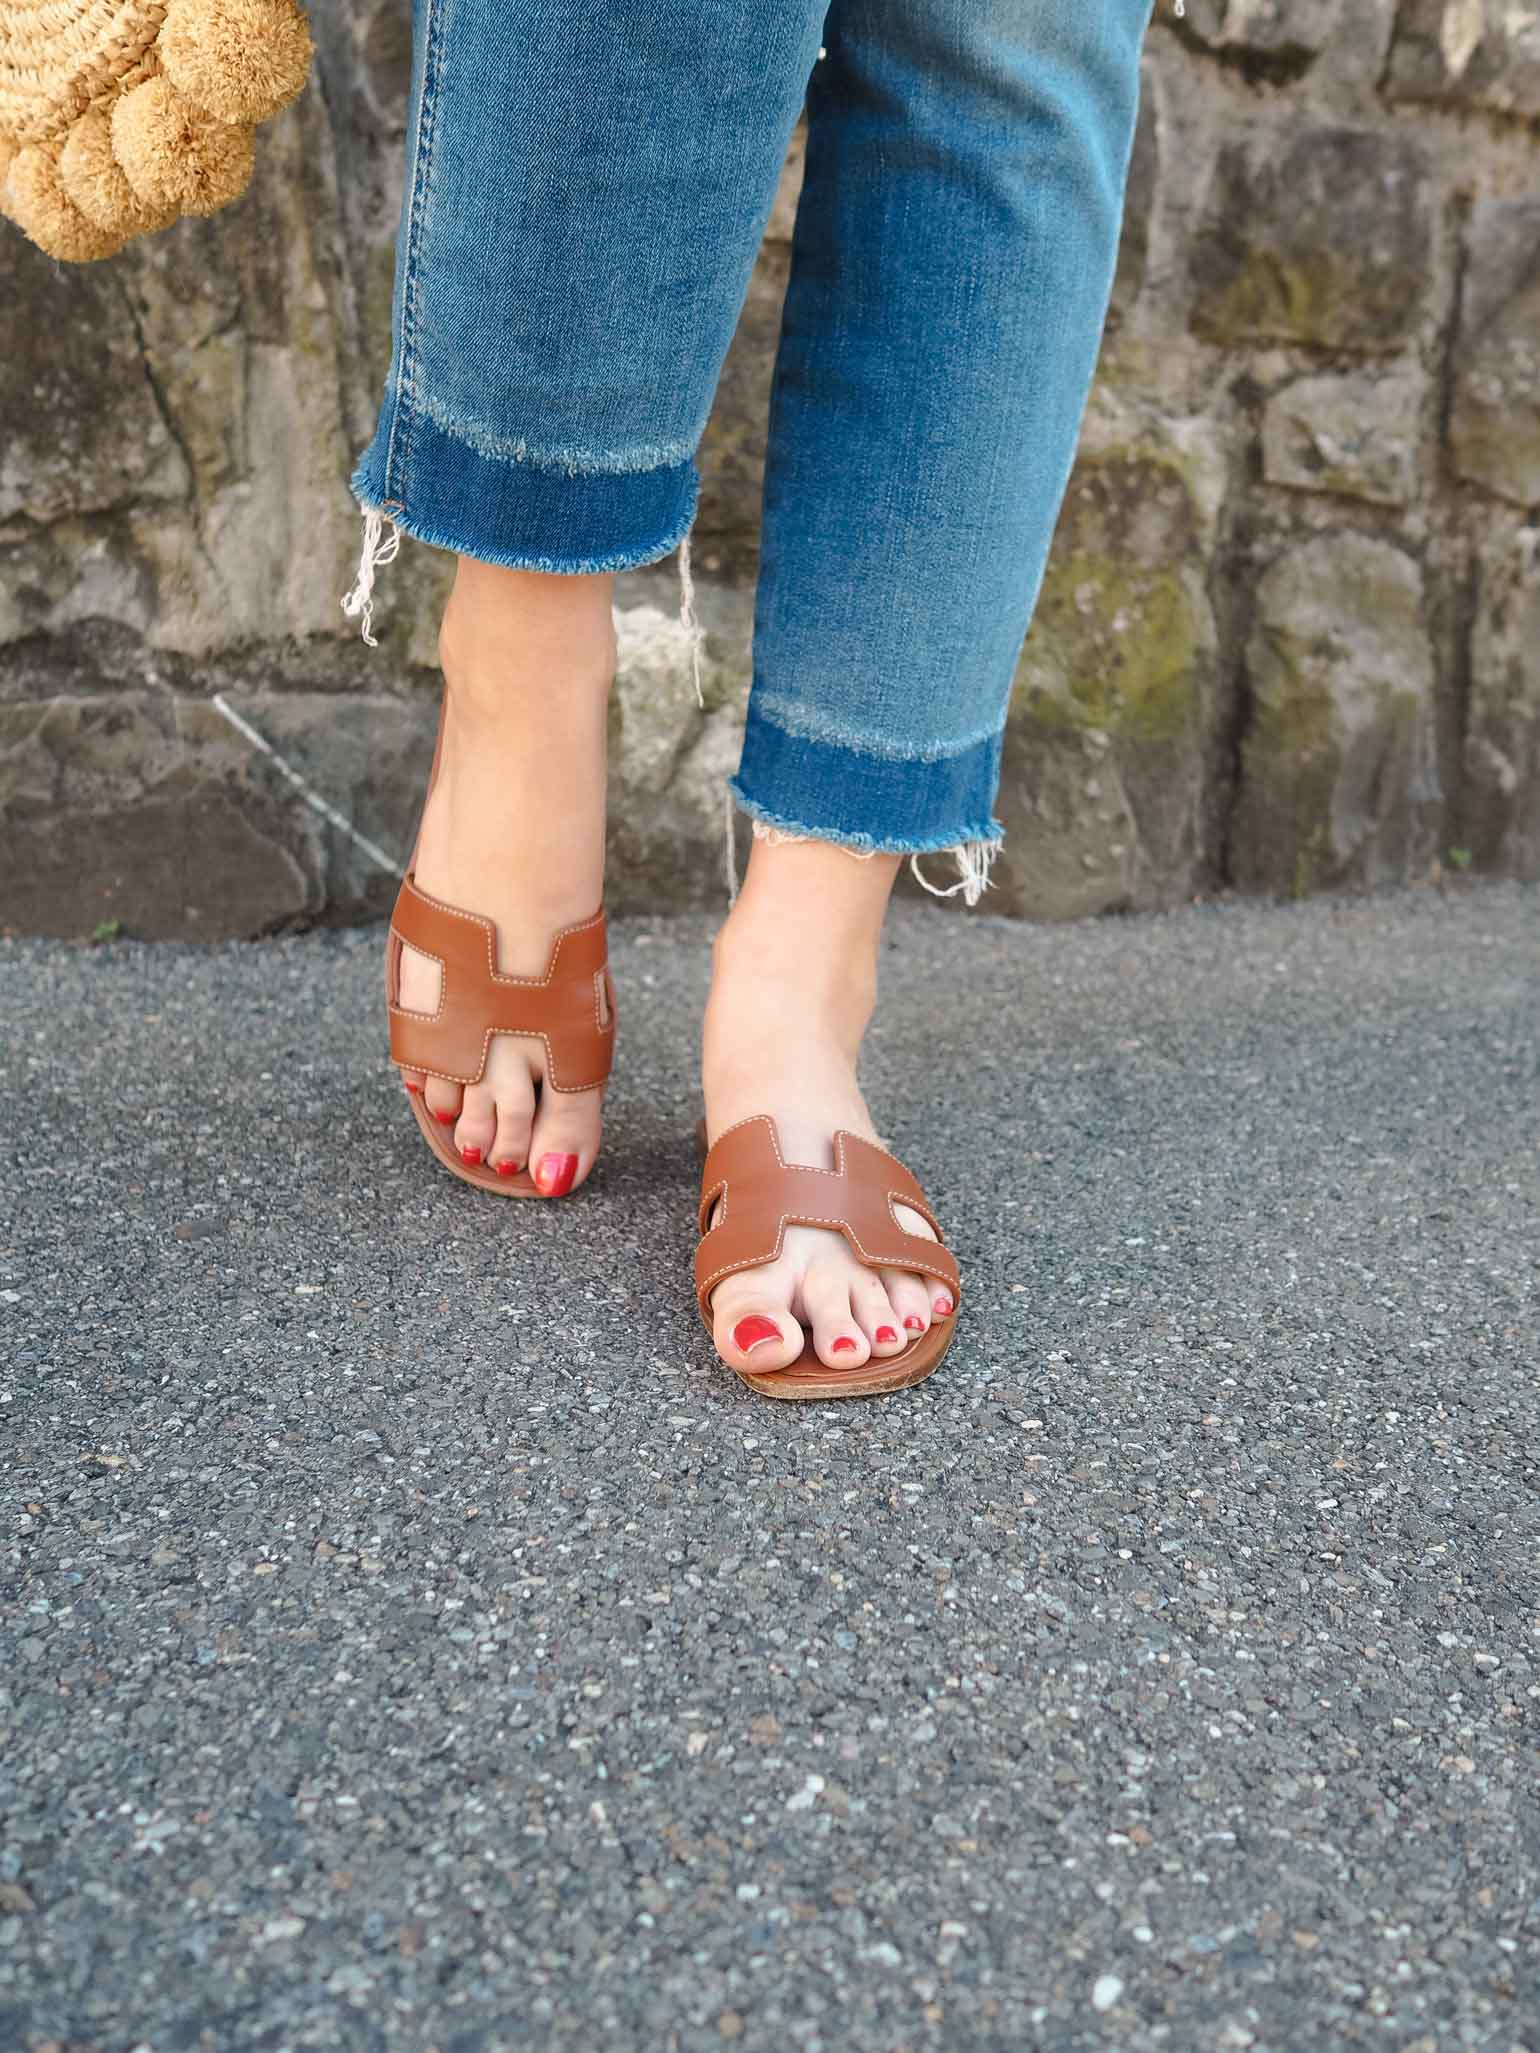 dbb361a4cdb Dallas fashion blogger shares her thoughts on the infamous Hermes Oran  Sandals